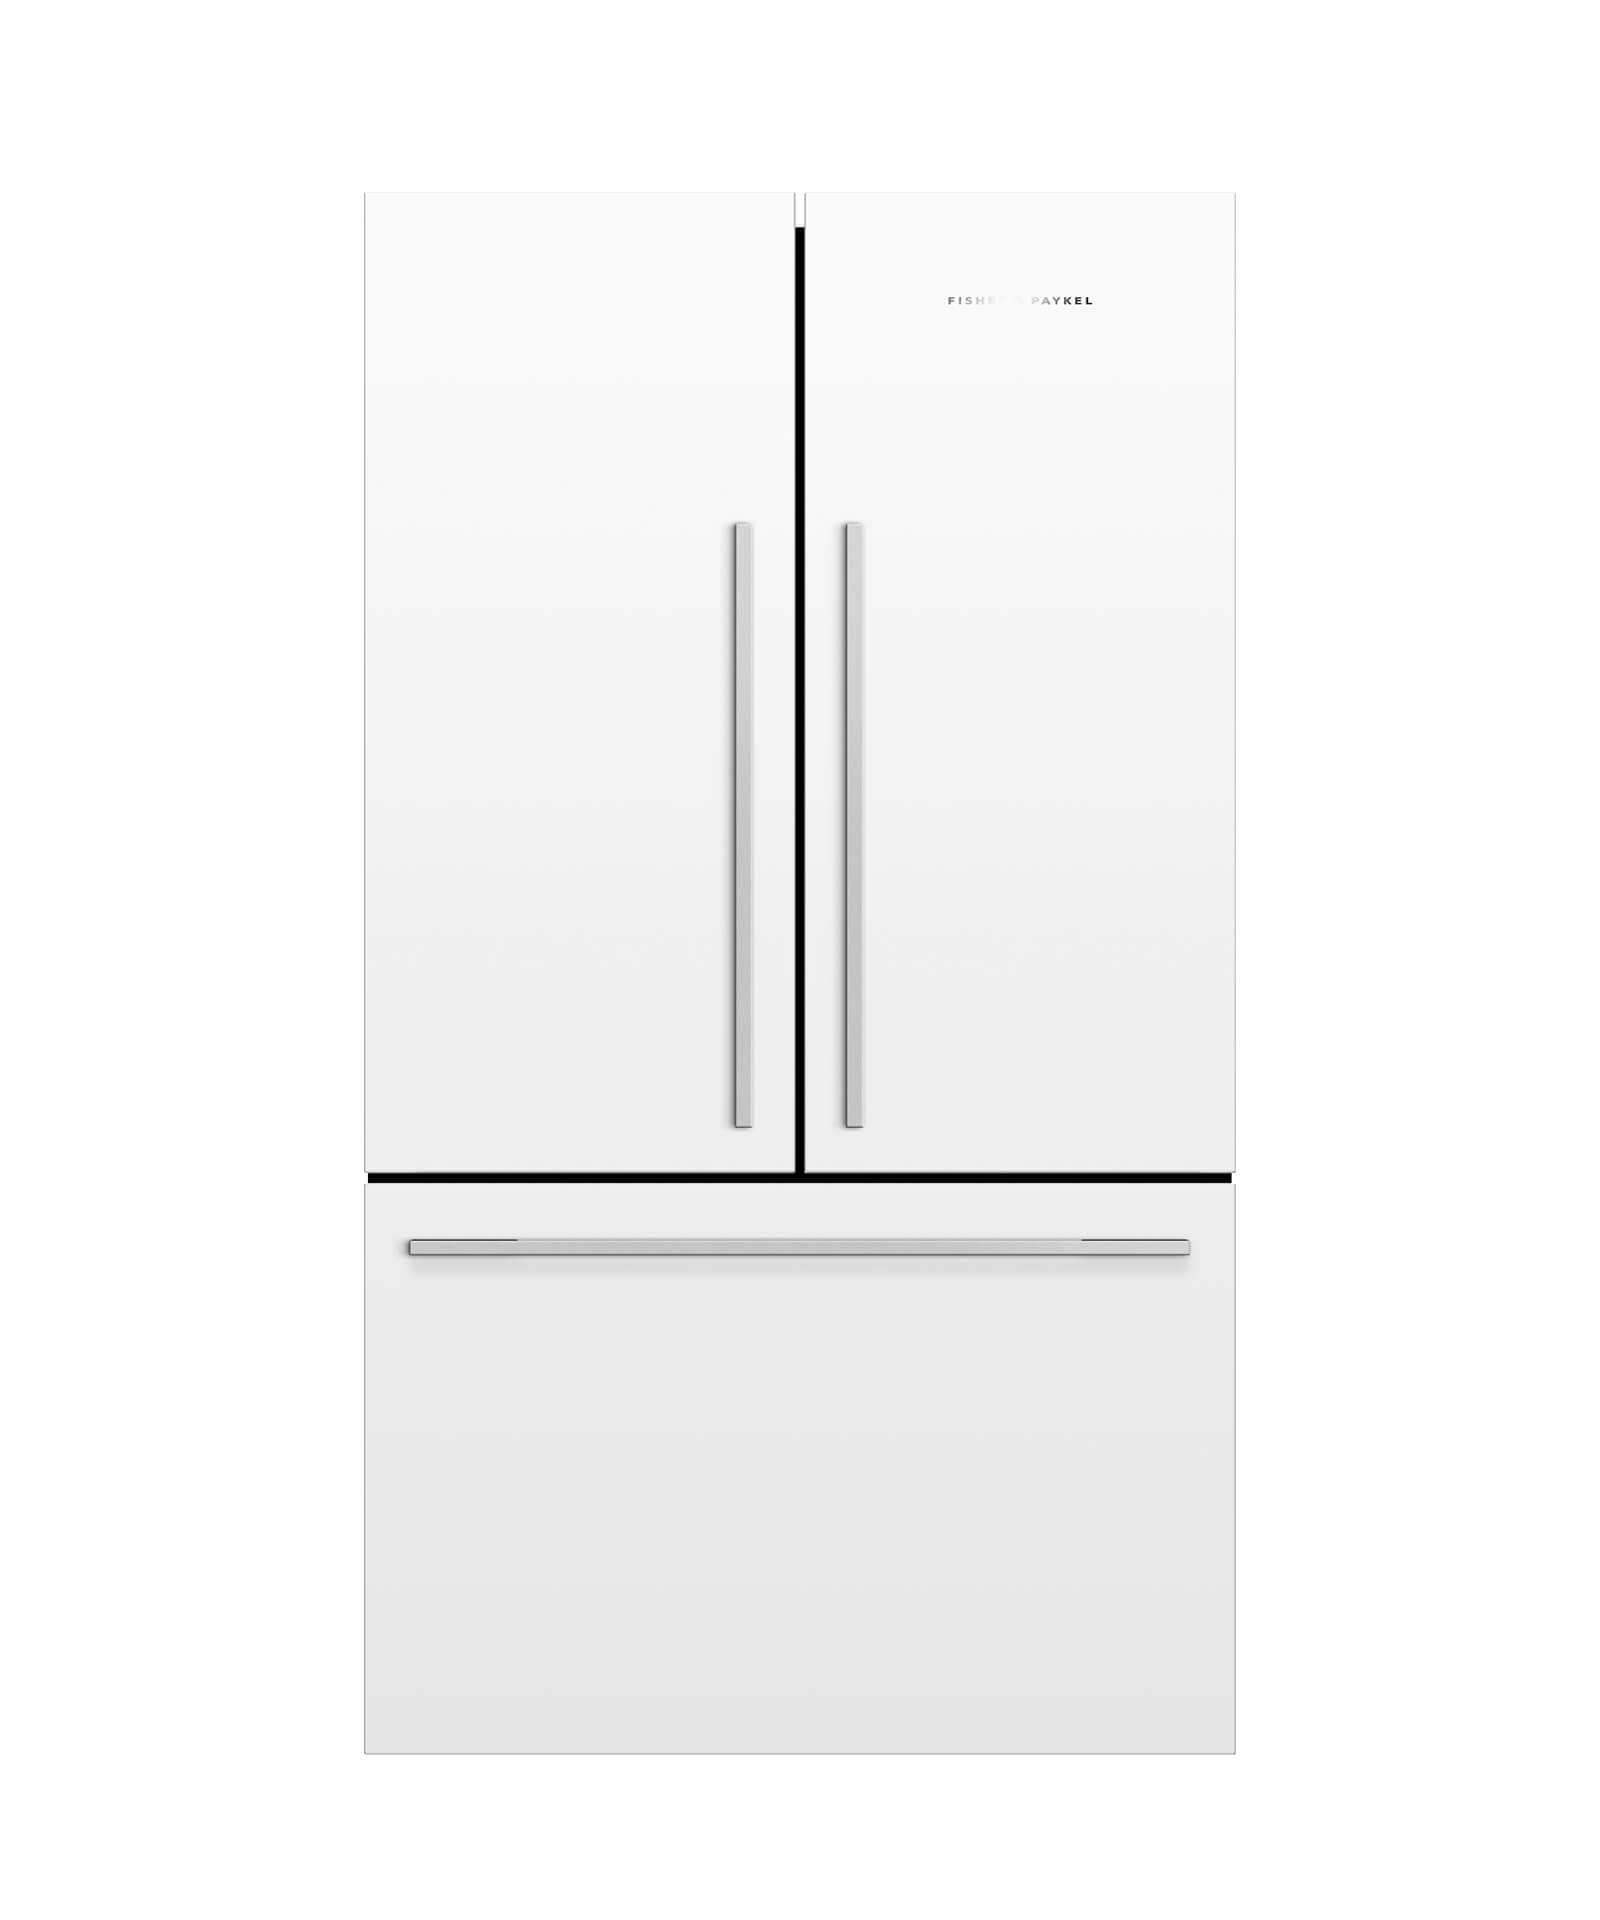 RF522ADW4 - ActiveSmart™ Refrigerator - 790mm French Door American Style 443L - 25226